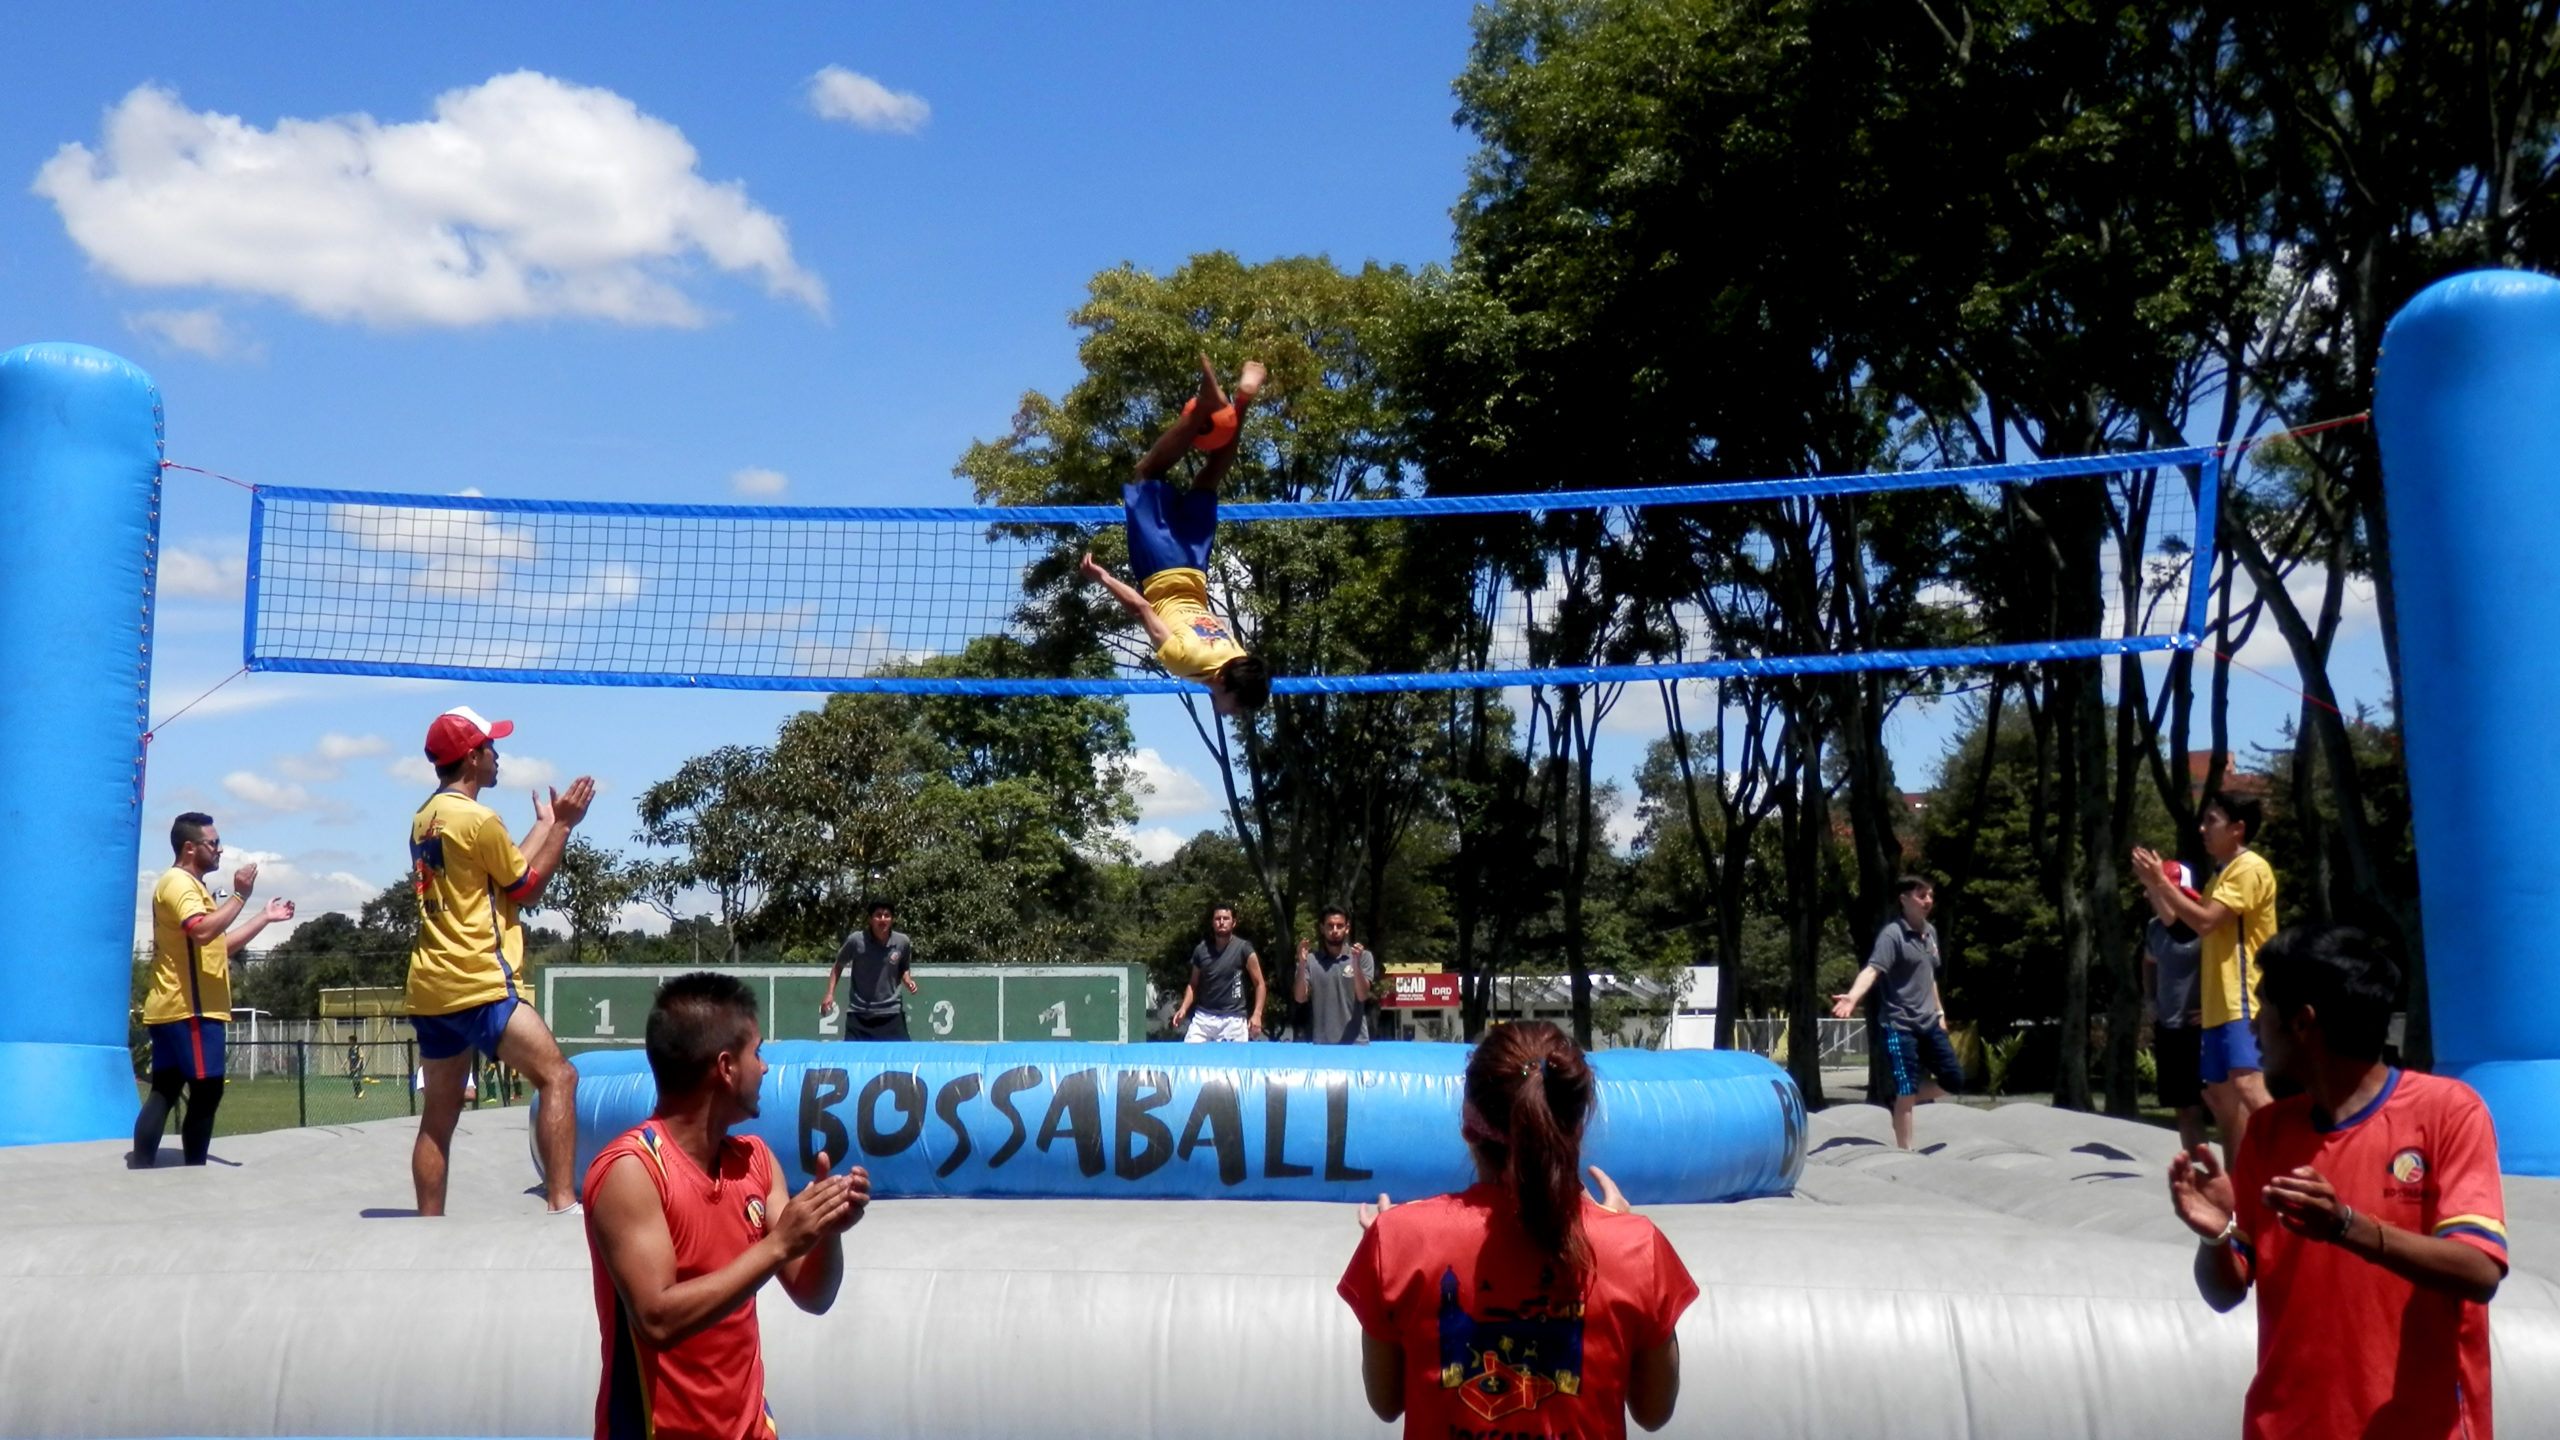 Bossaball: The Crazy Galvanizing Ball Game